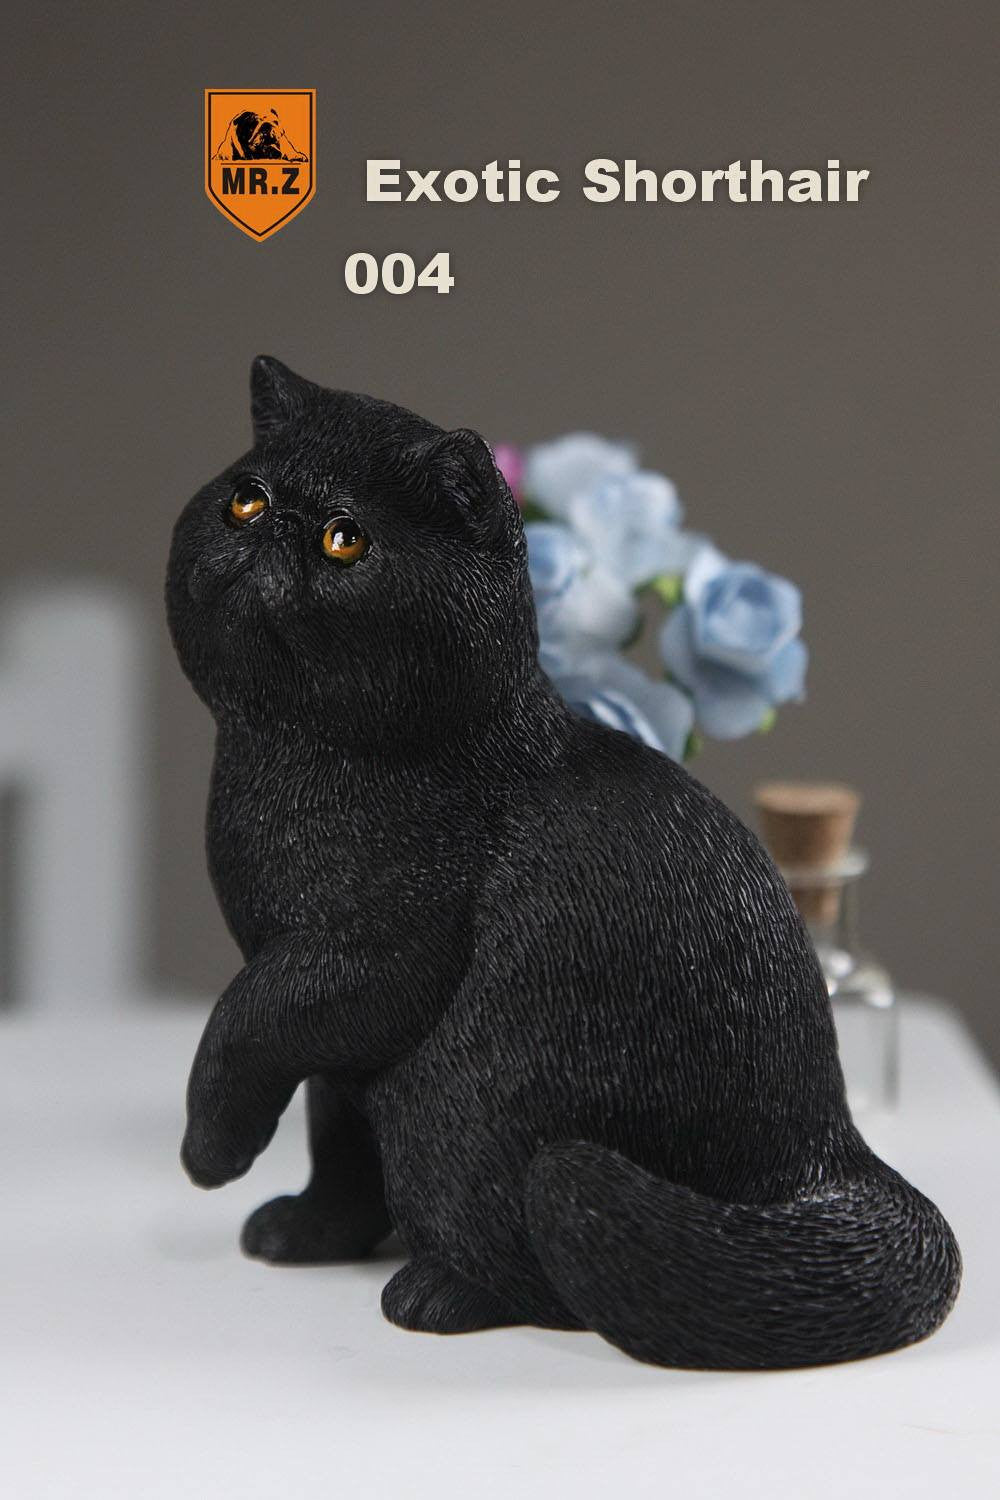 MR.Z - Real Animal Series No.8 - 1/6th Scale Exotic Shorthair Cat (Garfield) 001-005 - Marvelous Toys - 27